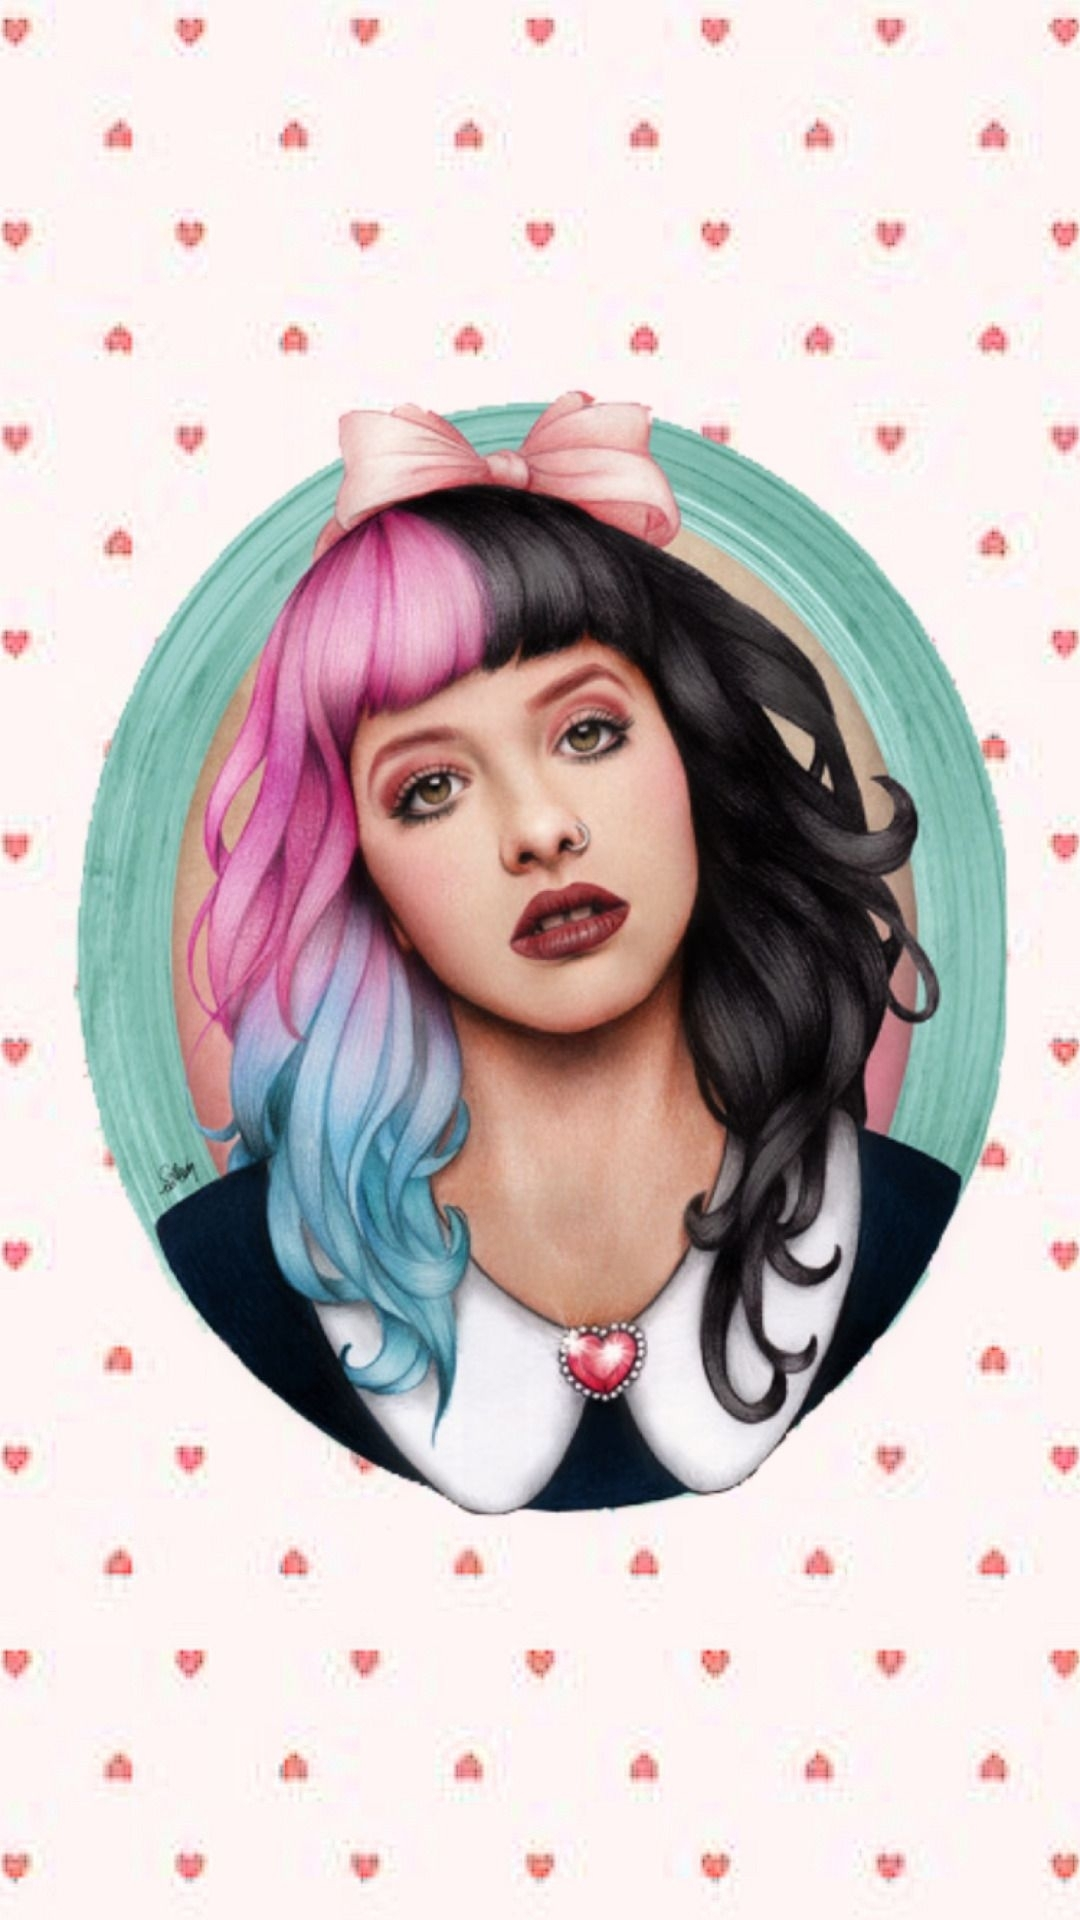 10 Latest Melanie Martinez Wallpaper Iphone FULL HD 1920×1080 For PC Desktop